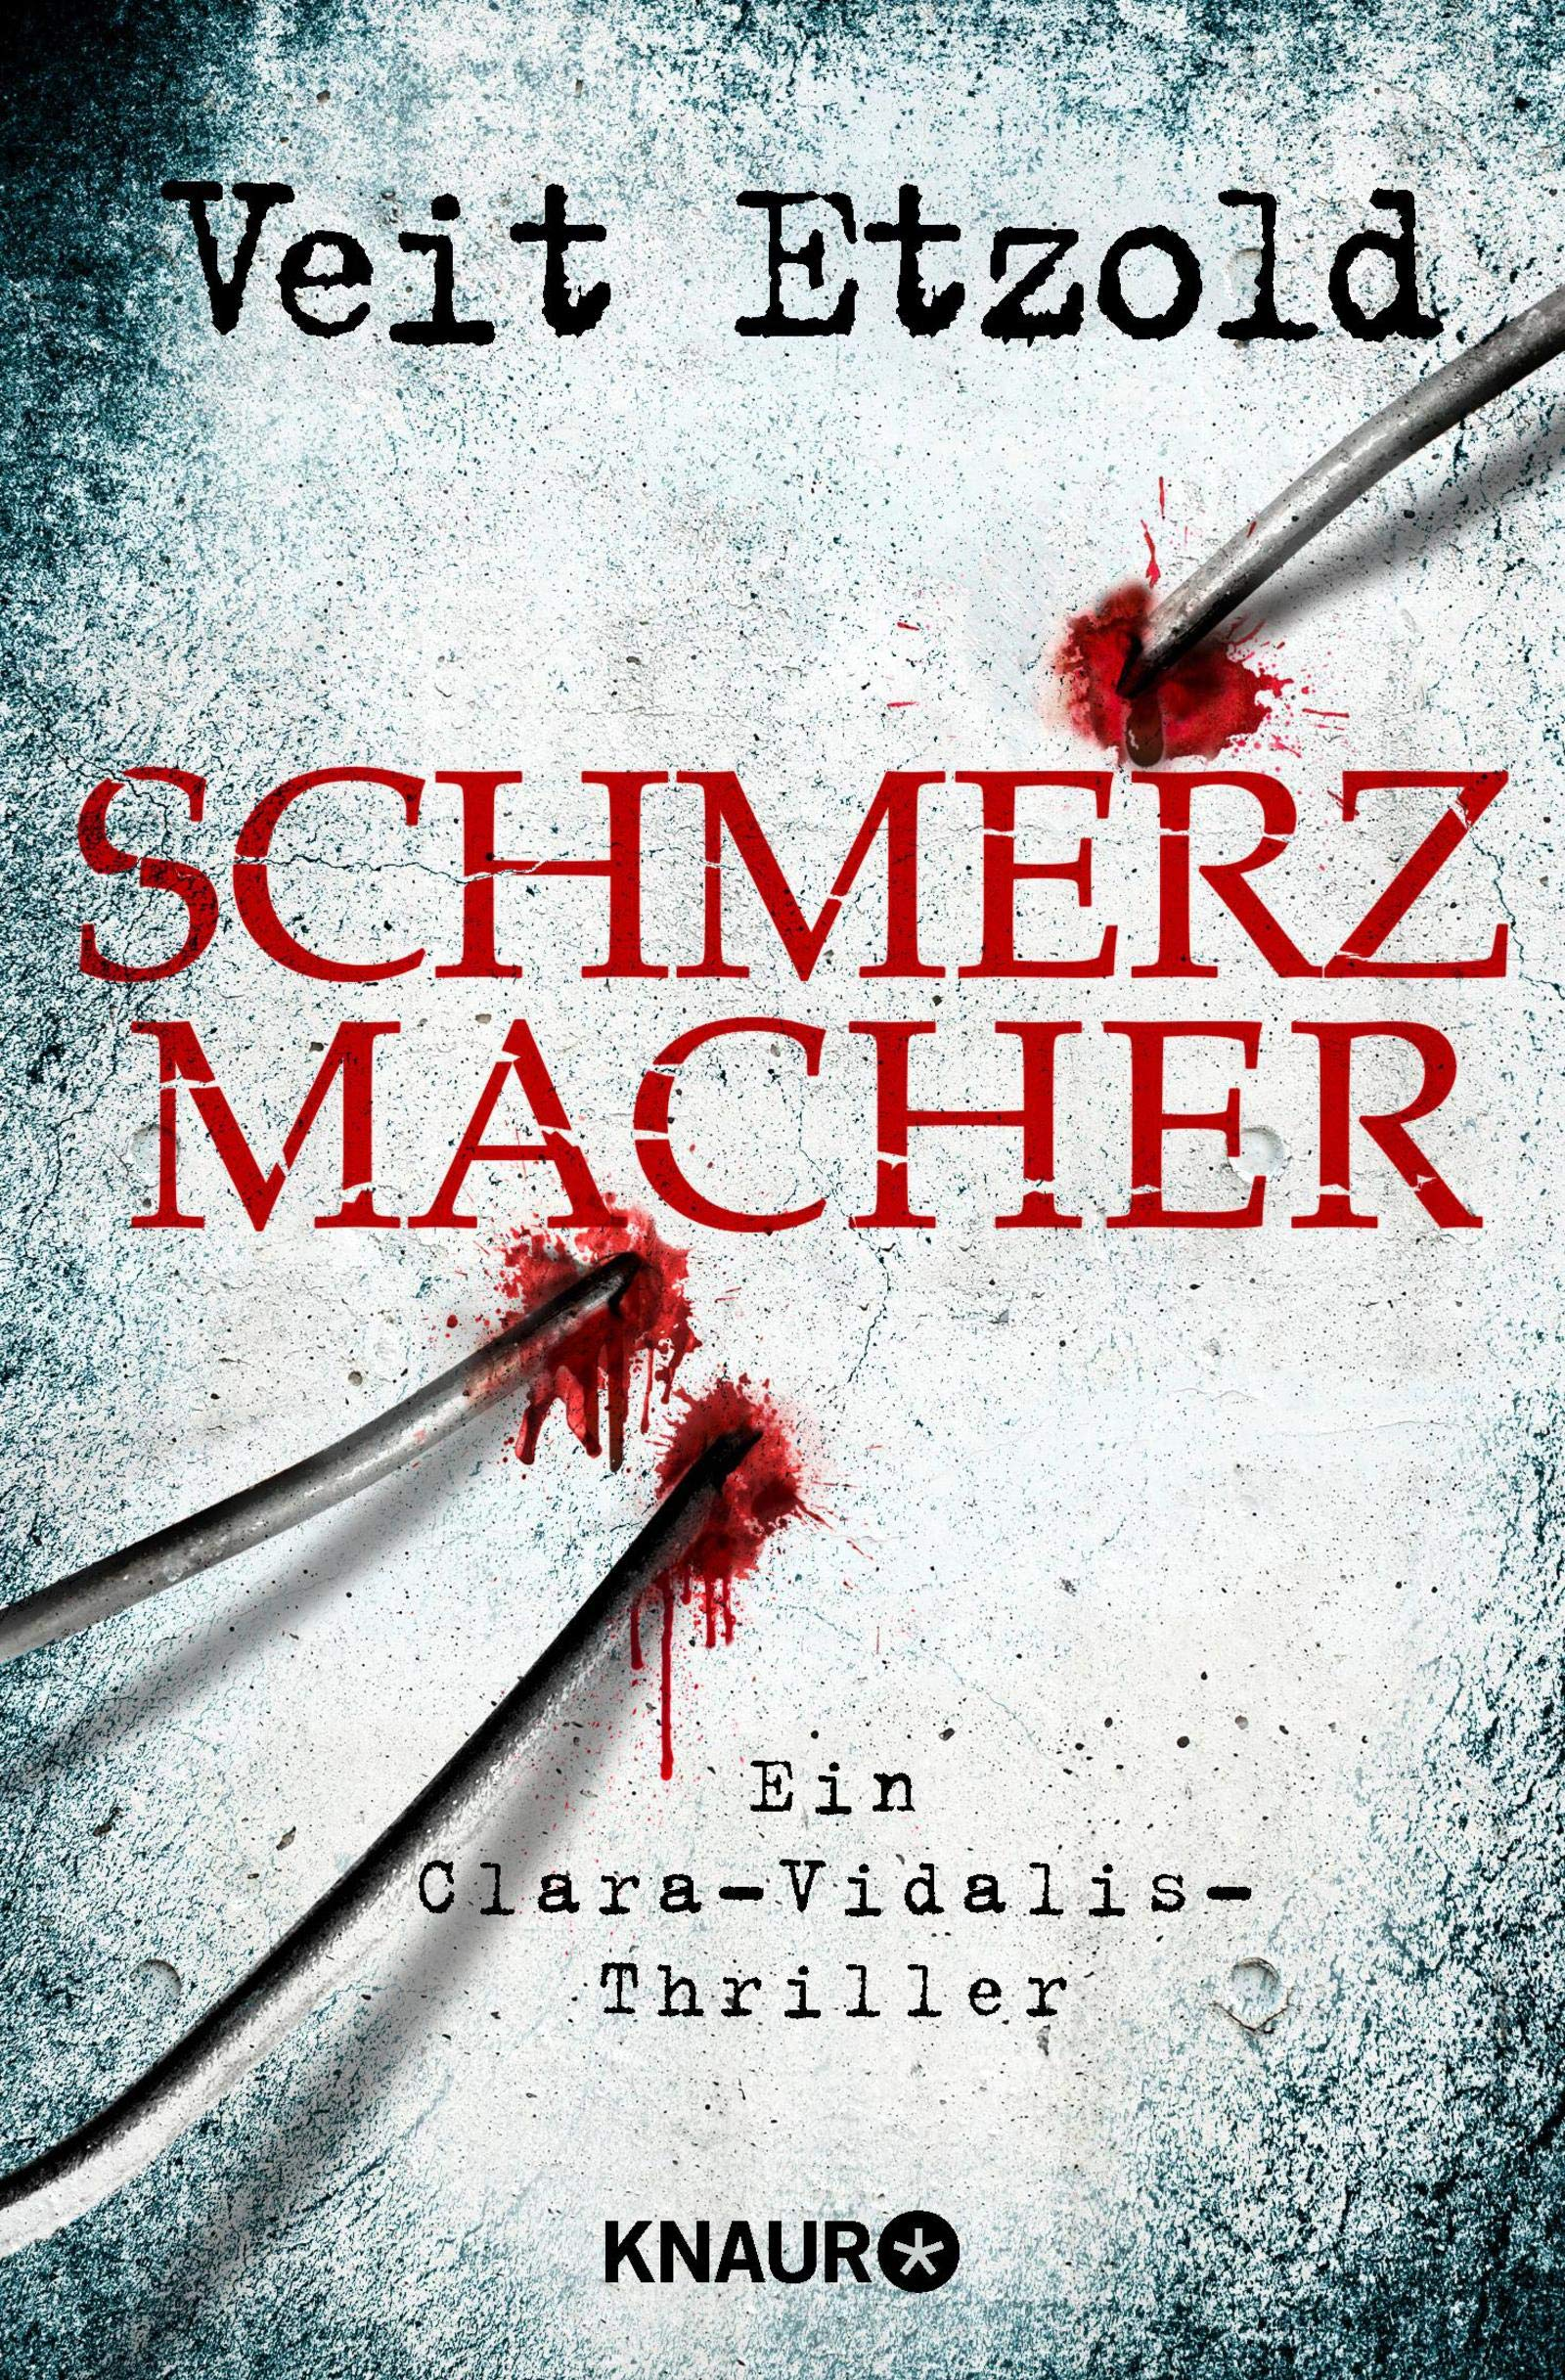 https://juliassammelsurium.blogspot.com/2019/04/rezension-schmerzmacher-veit-etzold.html